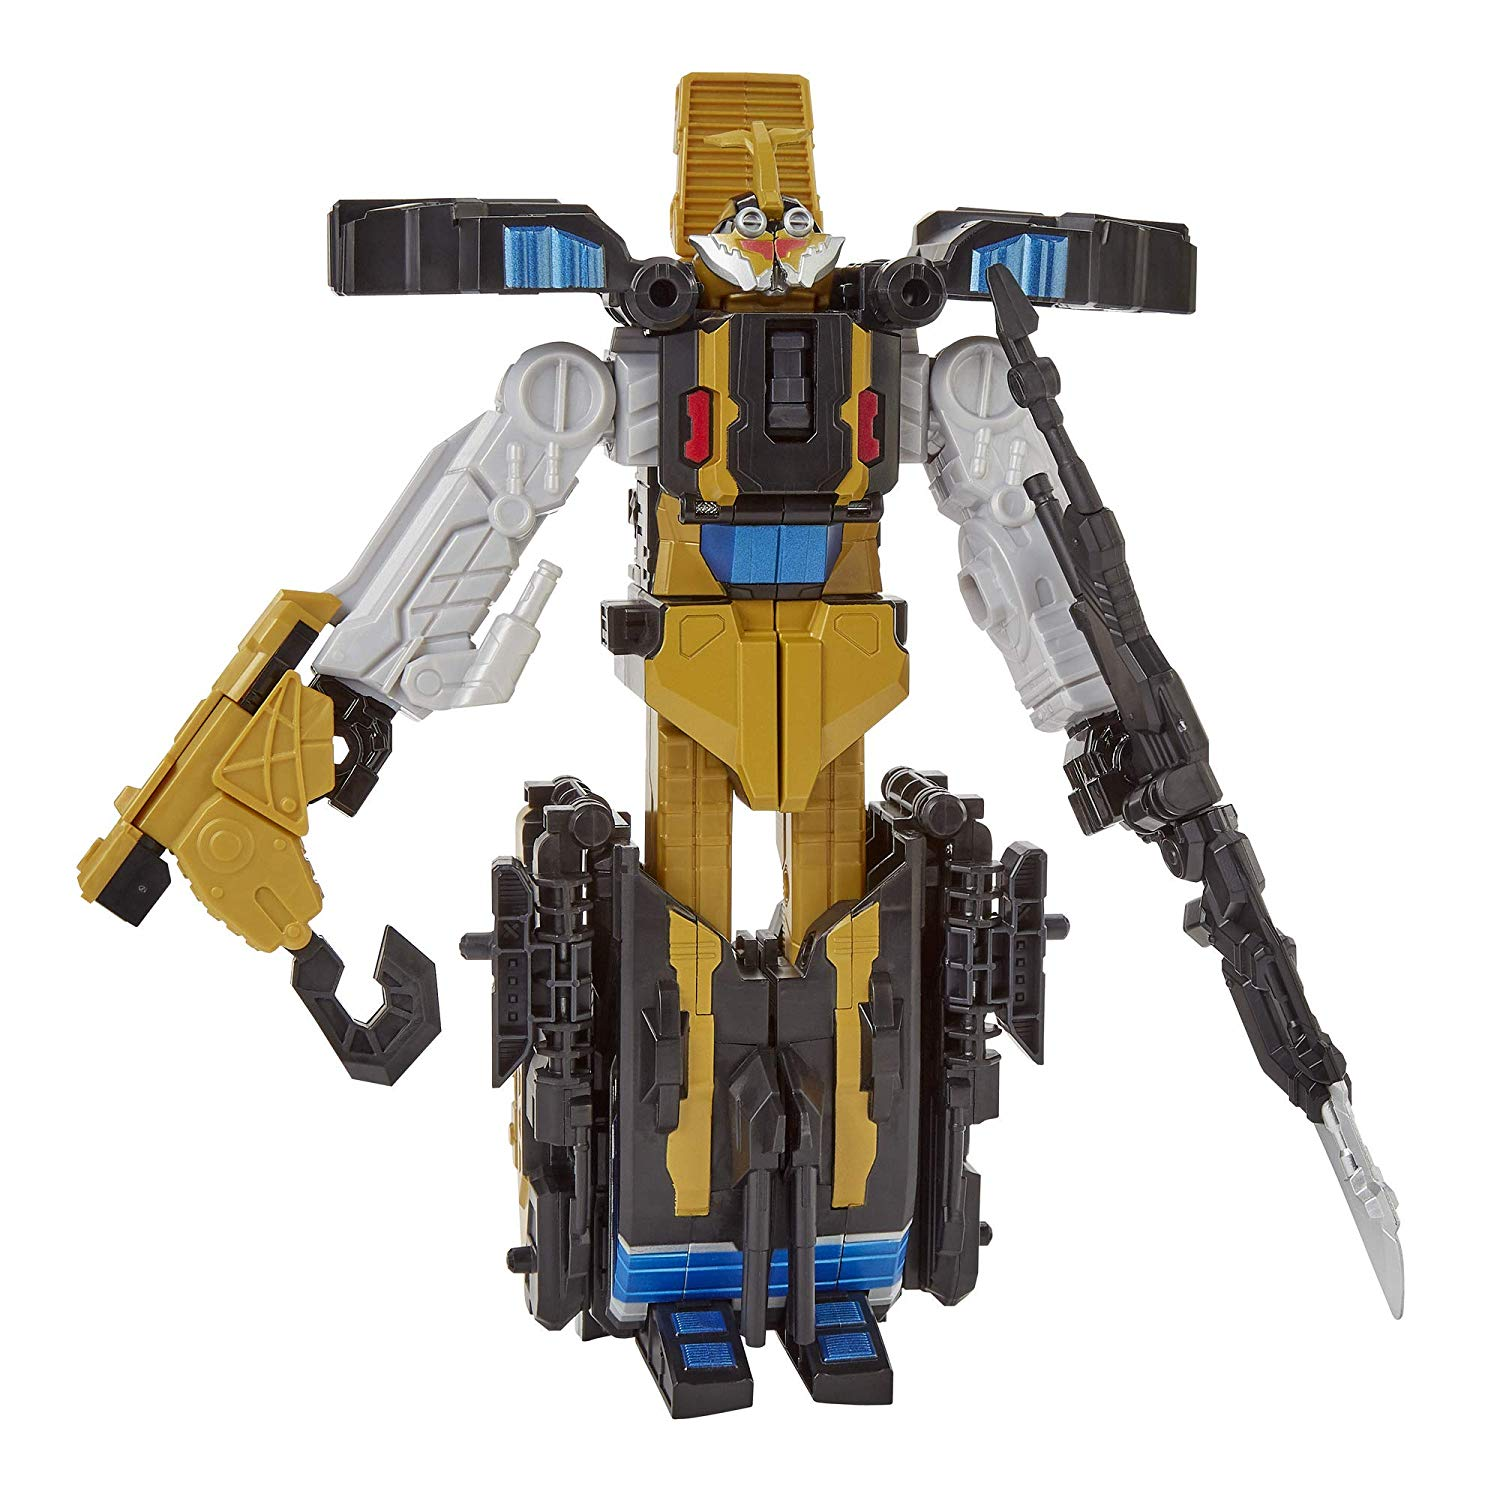 Power Ranger Gold Zord Vehicle by Hasbro -Hasbro - India - www.superherotoystore.com